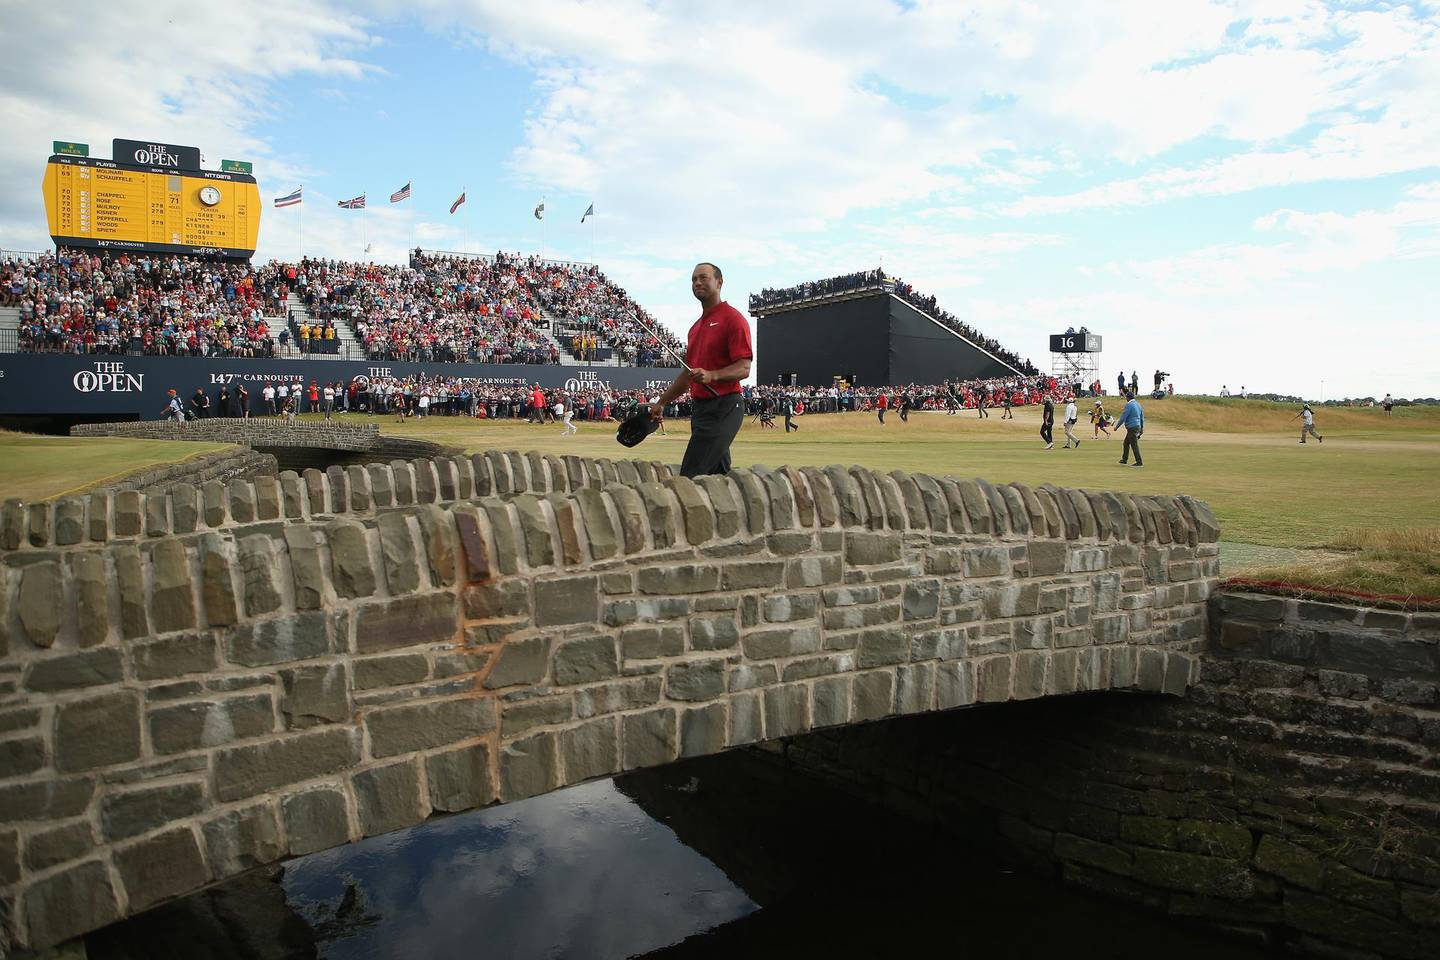 CARNOUSTIE, SCOTLAND - JULY 22:   Tiger Woods of the United States crosses the bridge on the 18th hole during the final round of the 147th Open Championship at Carnoustie Golf Club on July 22, 2018 in Carnoustie, Scotland.  (Photo by Francois Nel/Getty Images)